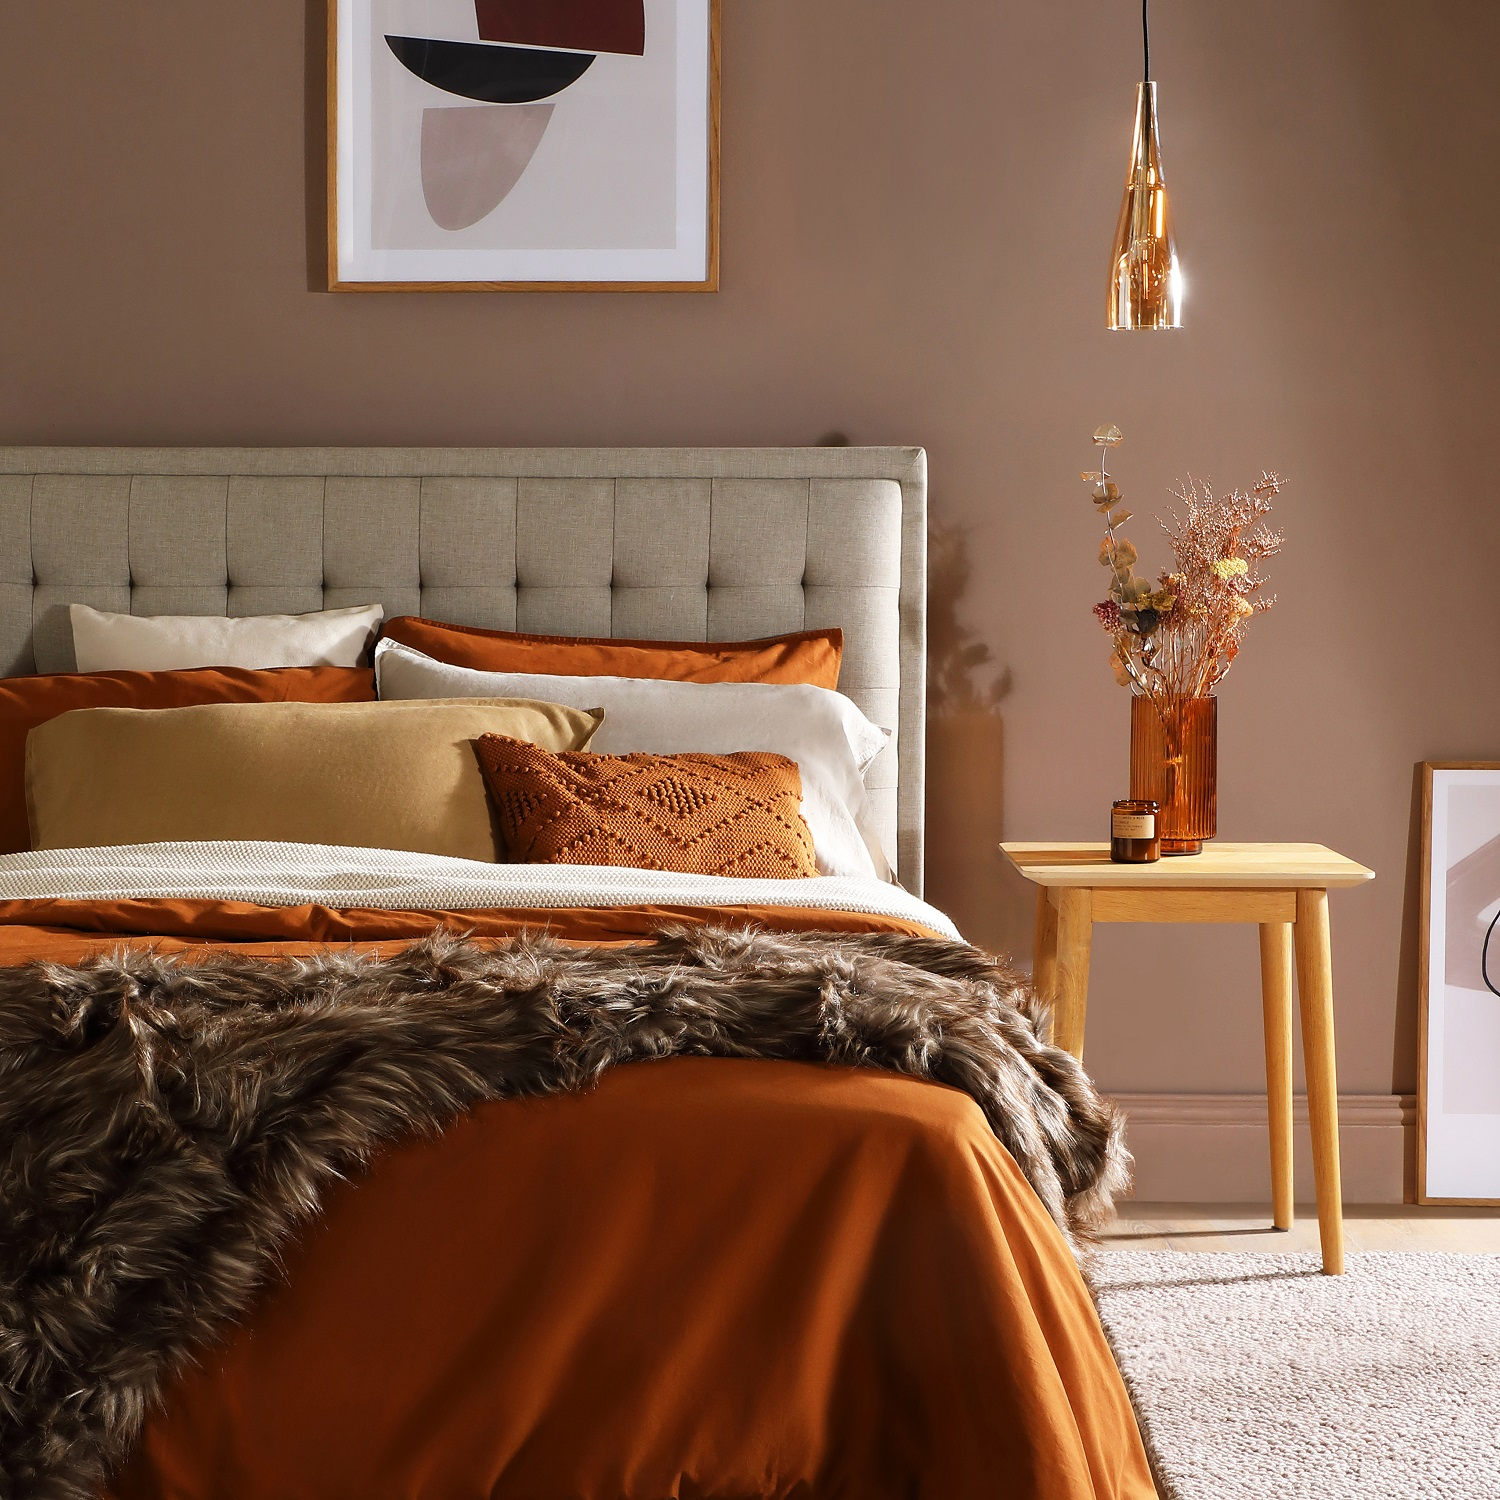 Furniture and Choice chose Earthborn's Muddy Boots for a relaxed bedroom